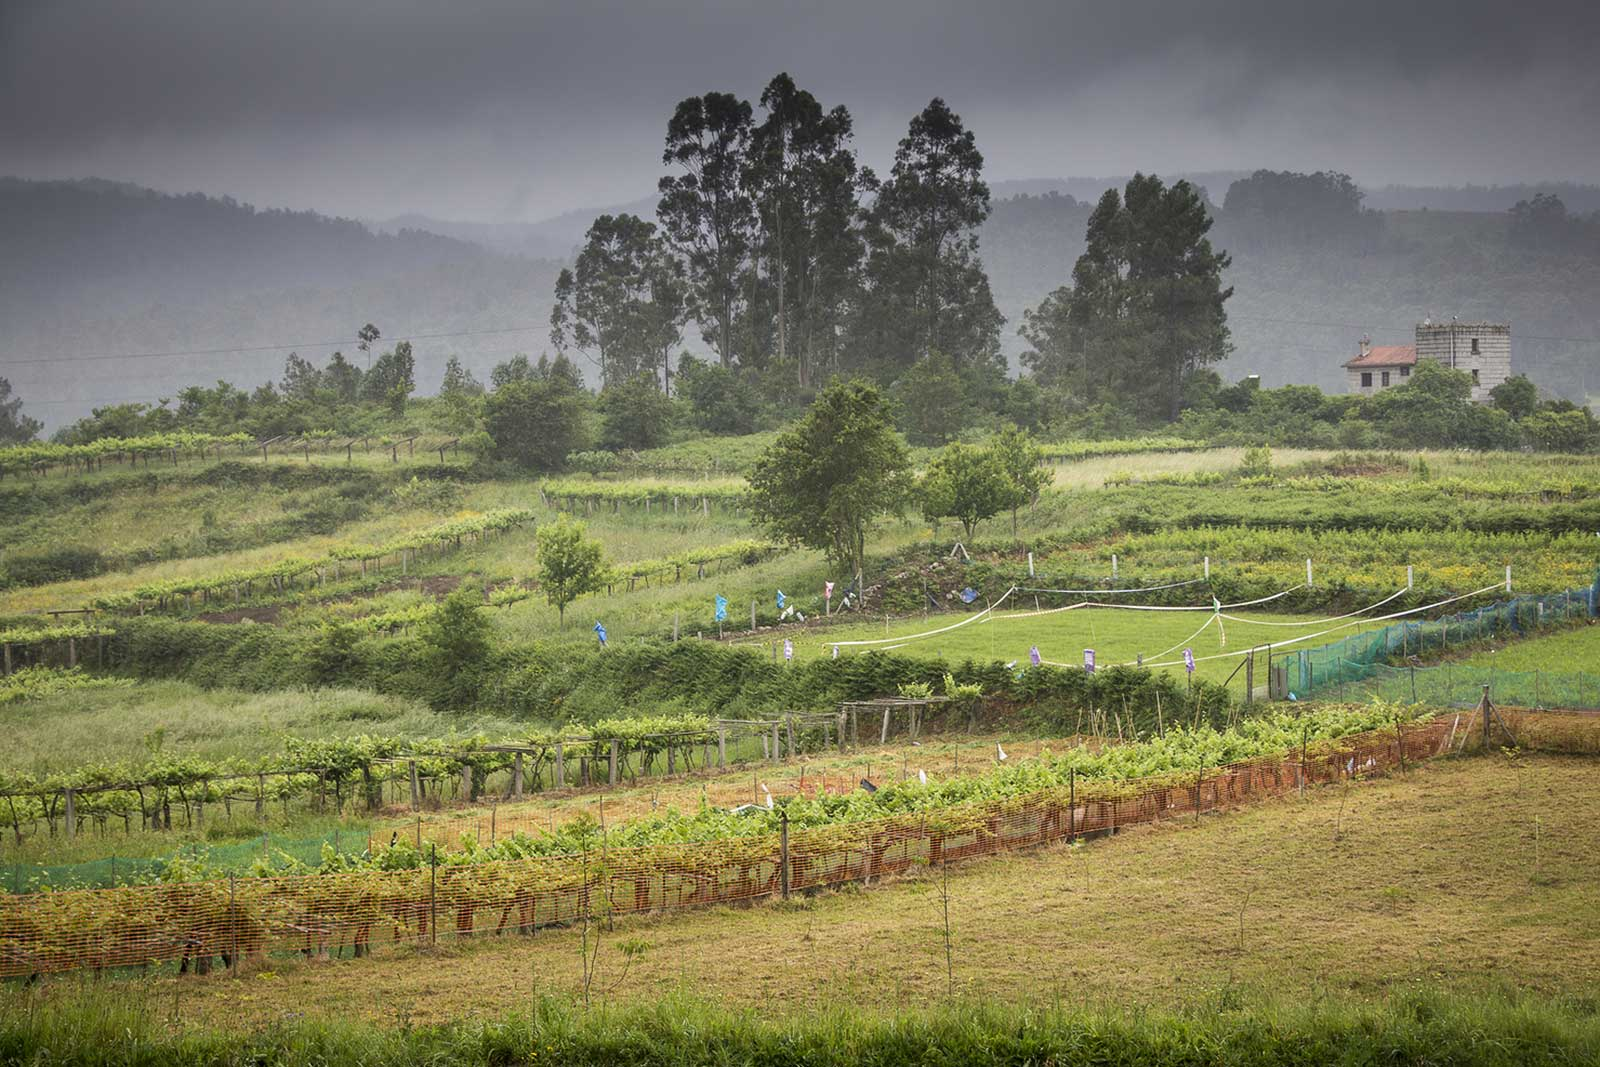 The Rías Baixas wine region of northwestern Spain is cool, wet and very cloudy. Just the kind of place for Albariño.